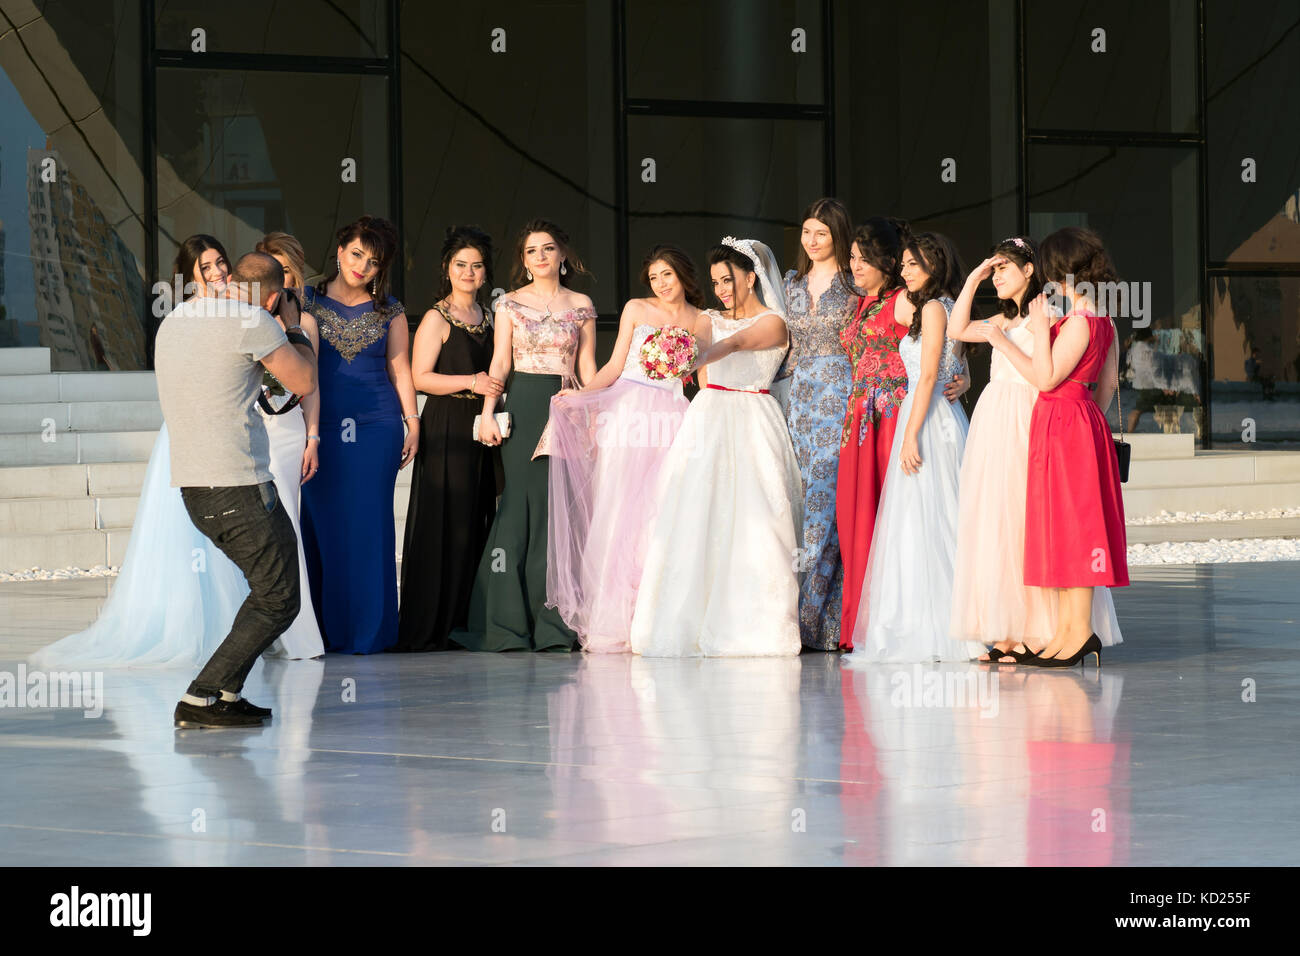 Photographer taking photos of a beautiful bride with her bridesmaids and friends, Baku, Azerbaijan - Stock Image